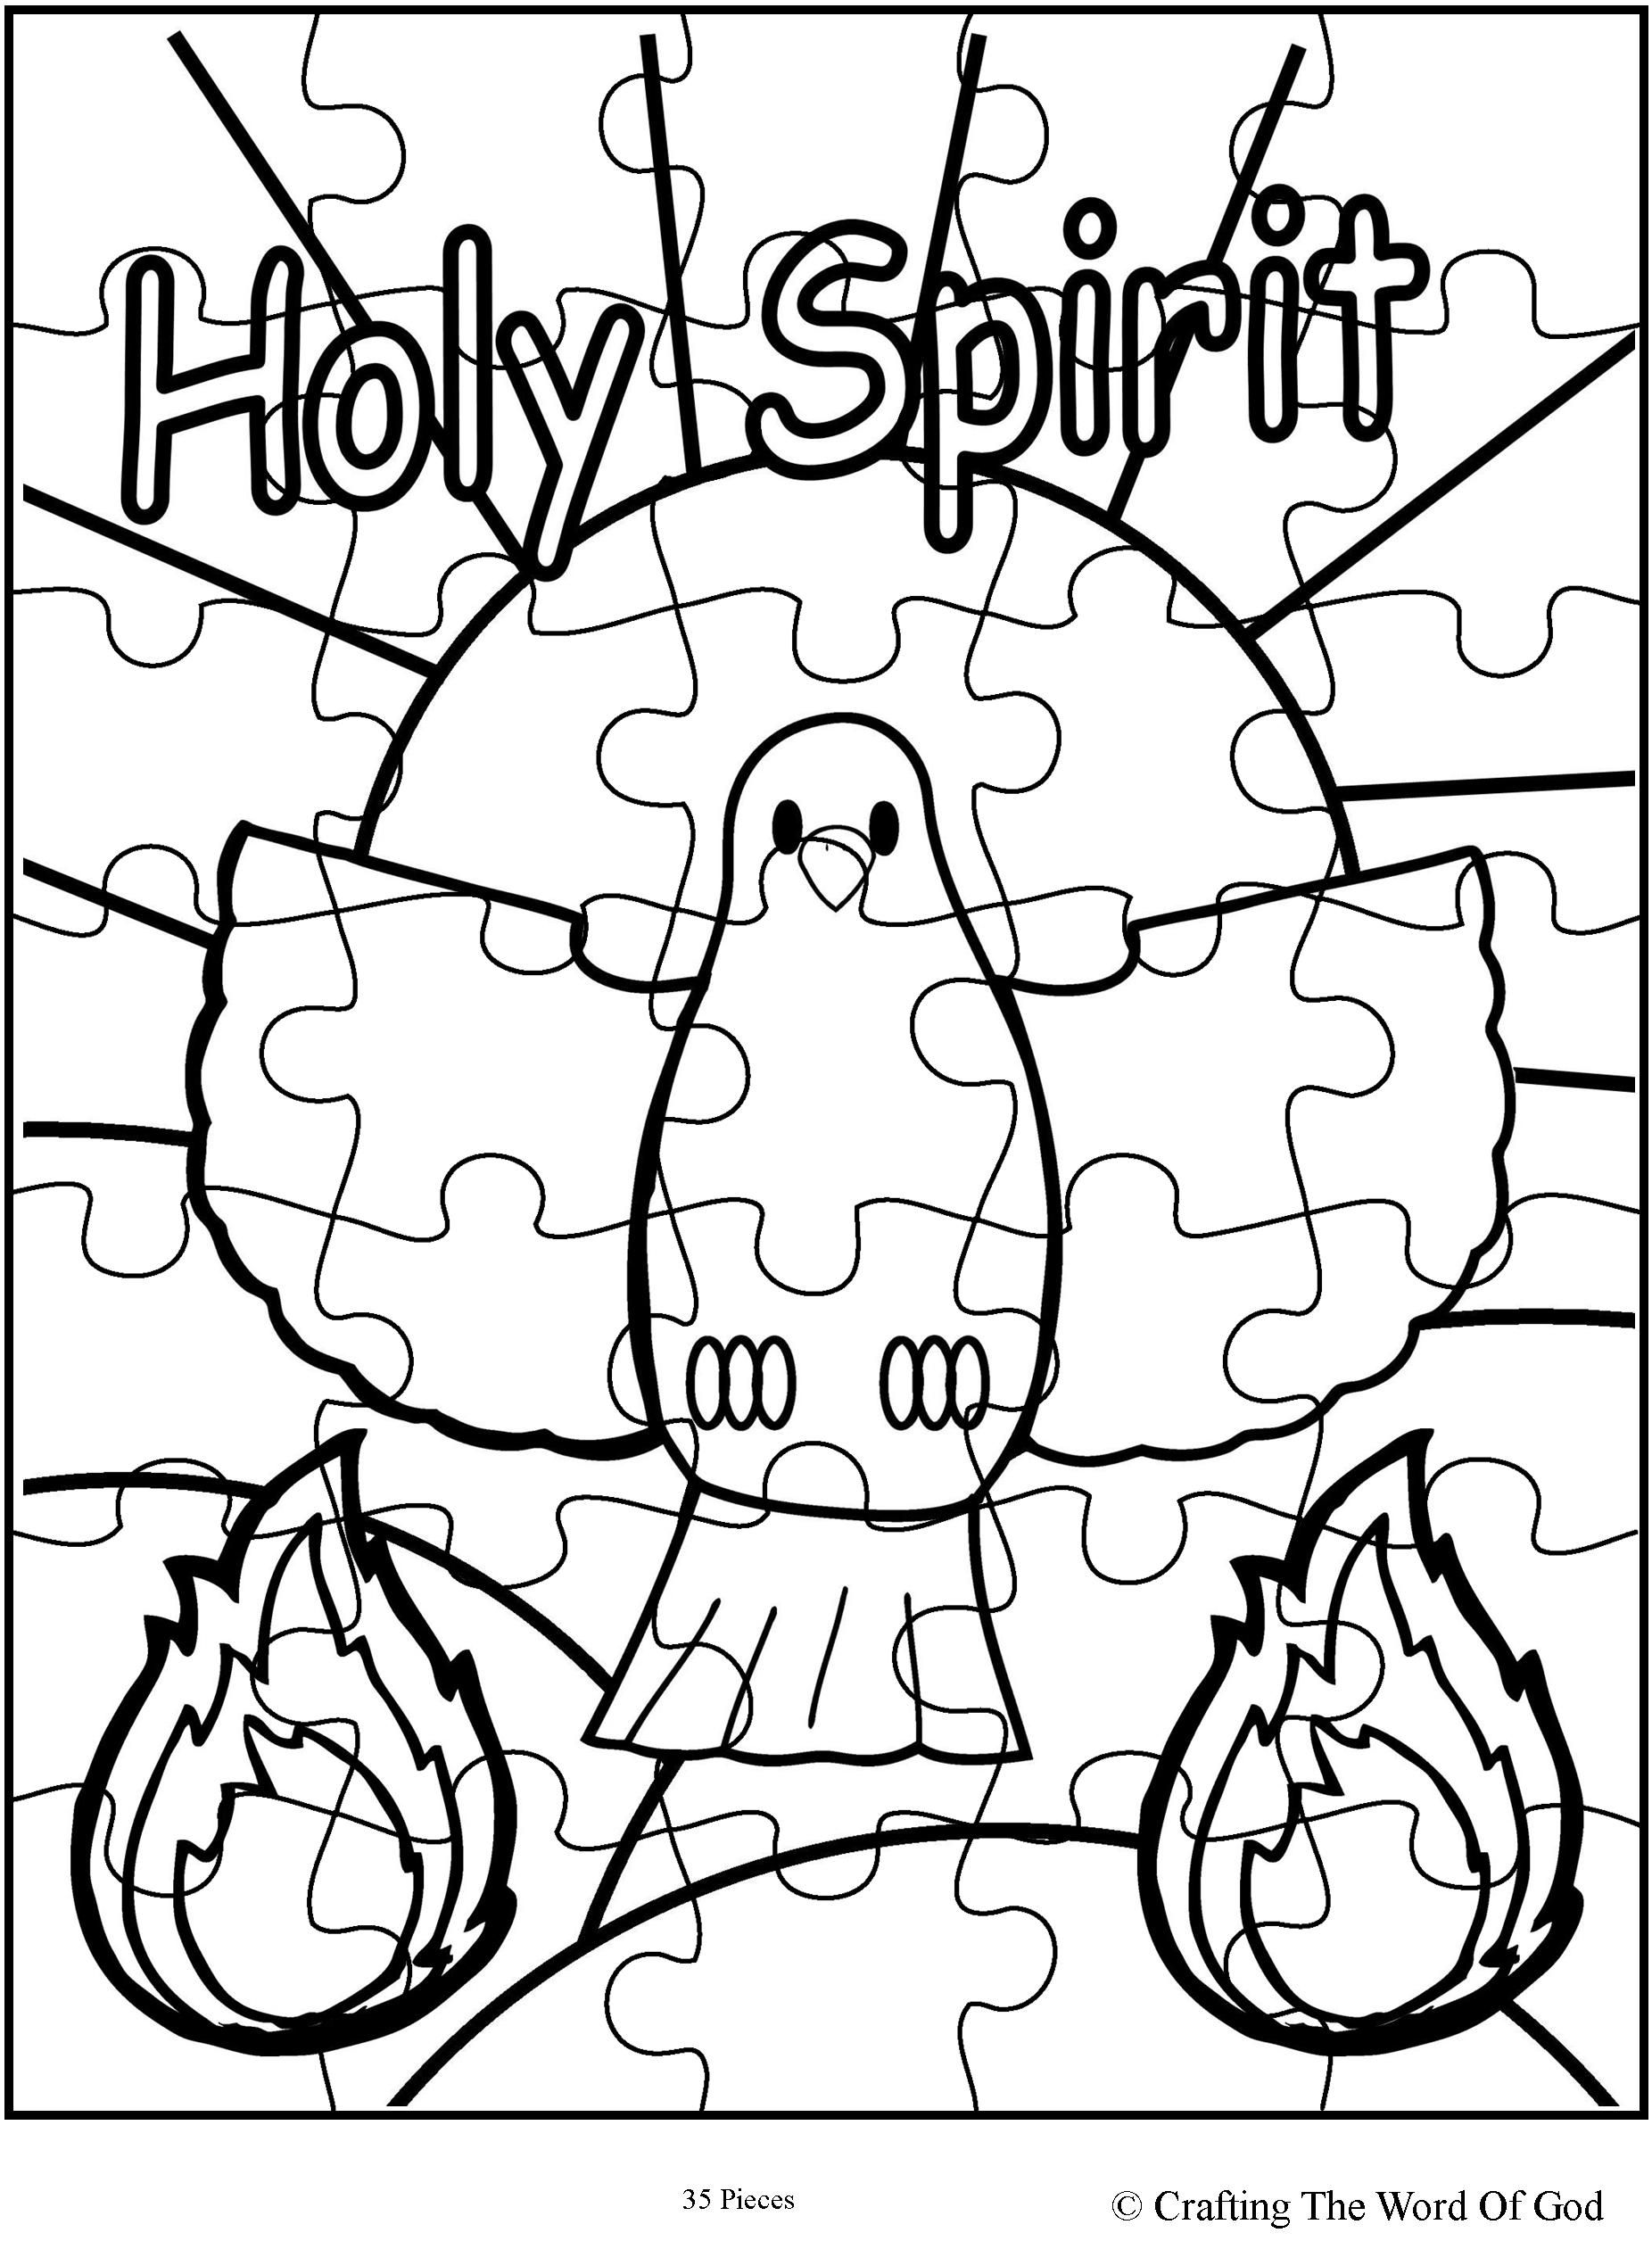 Holy Spirit Puzzle Activity Sheet Holy spirit